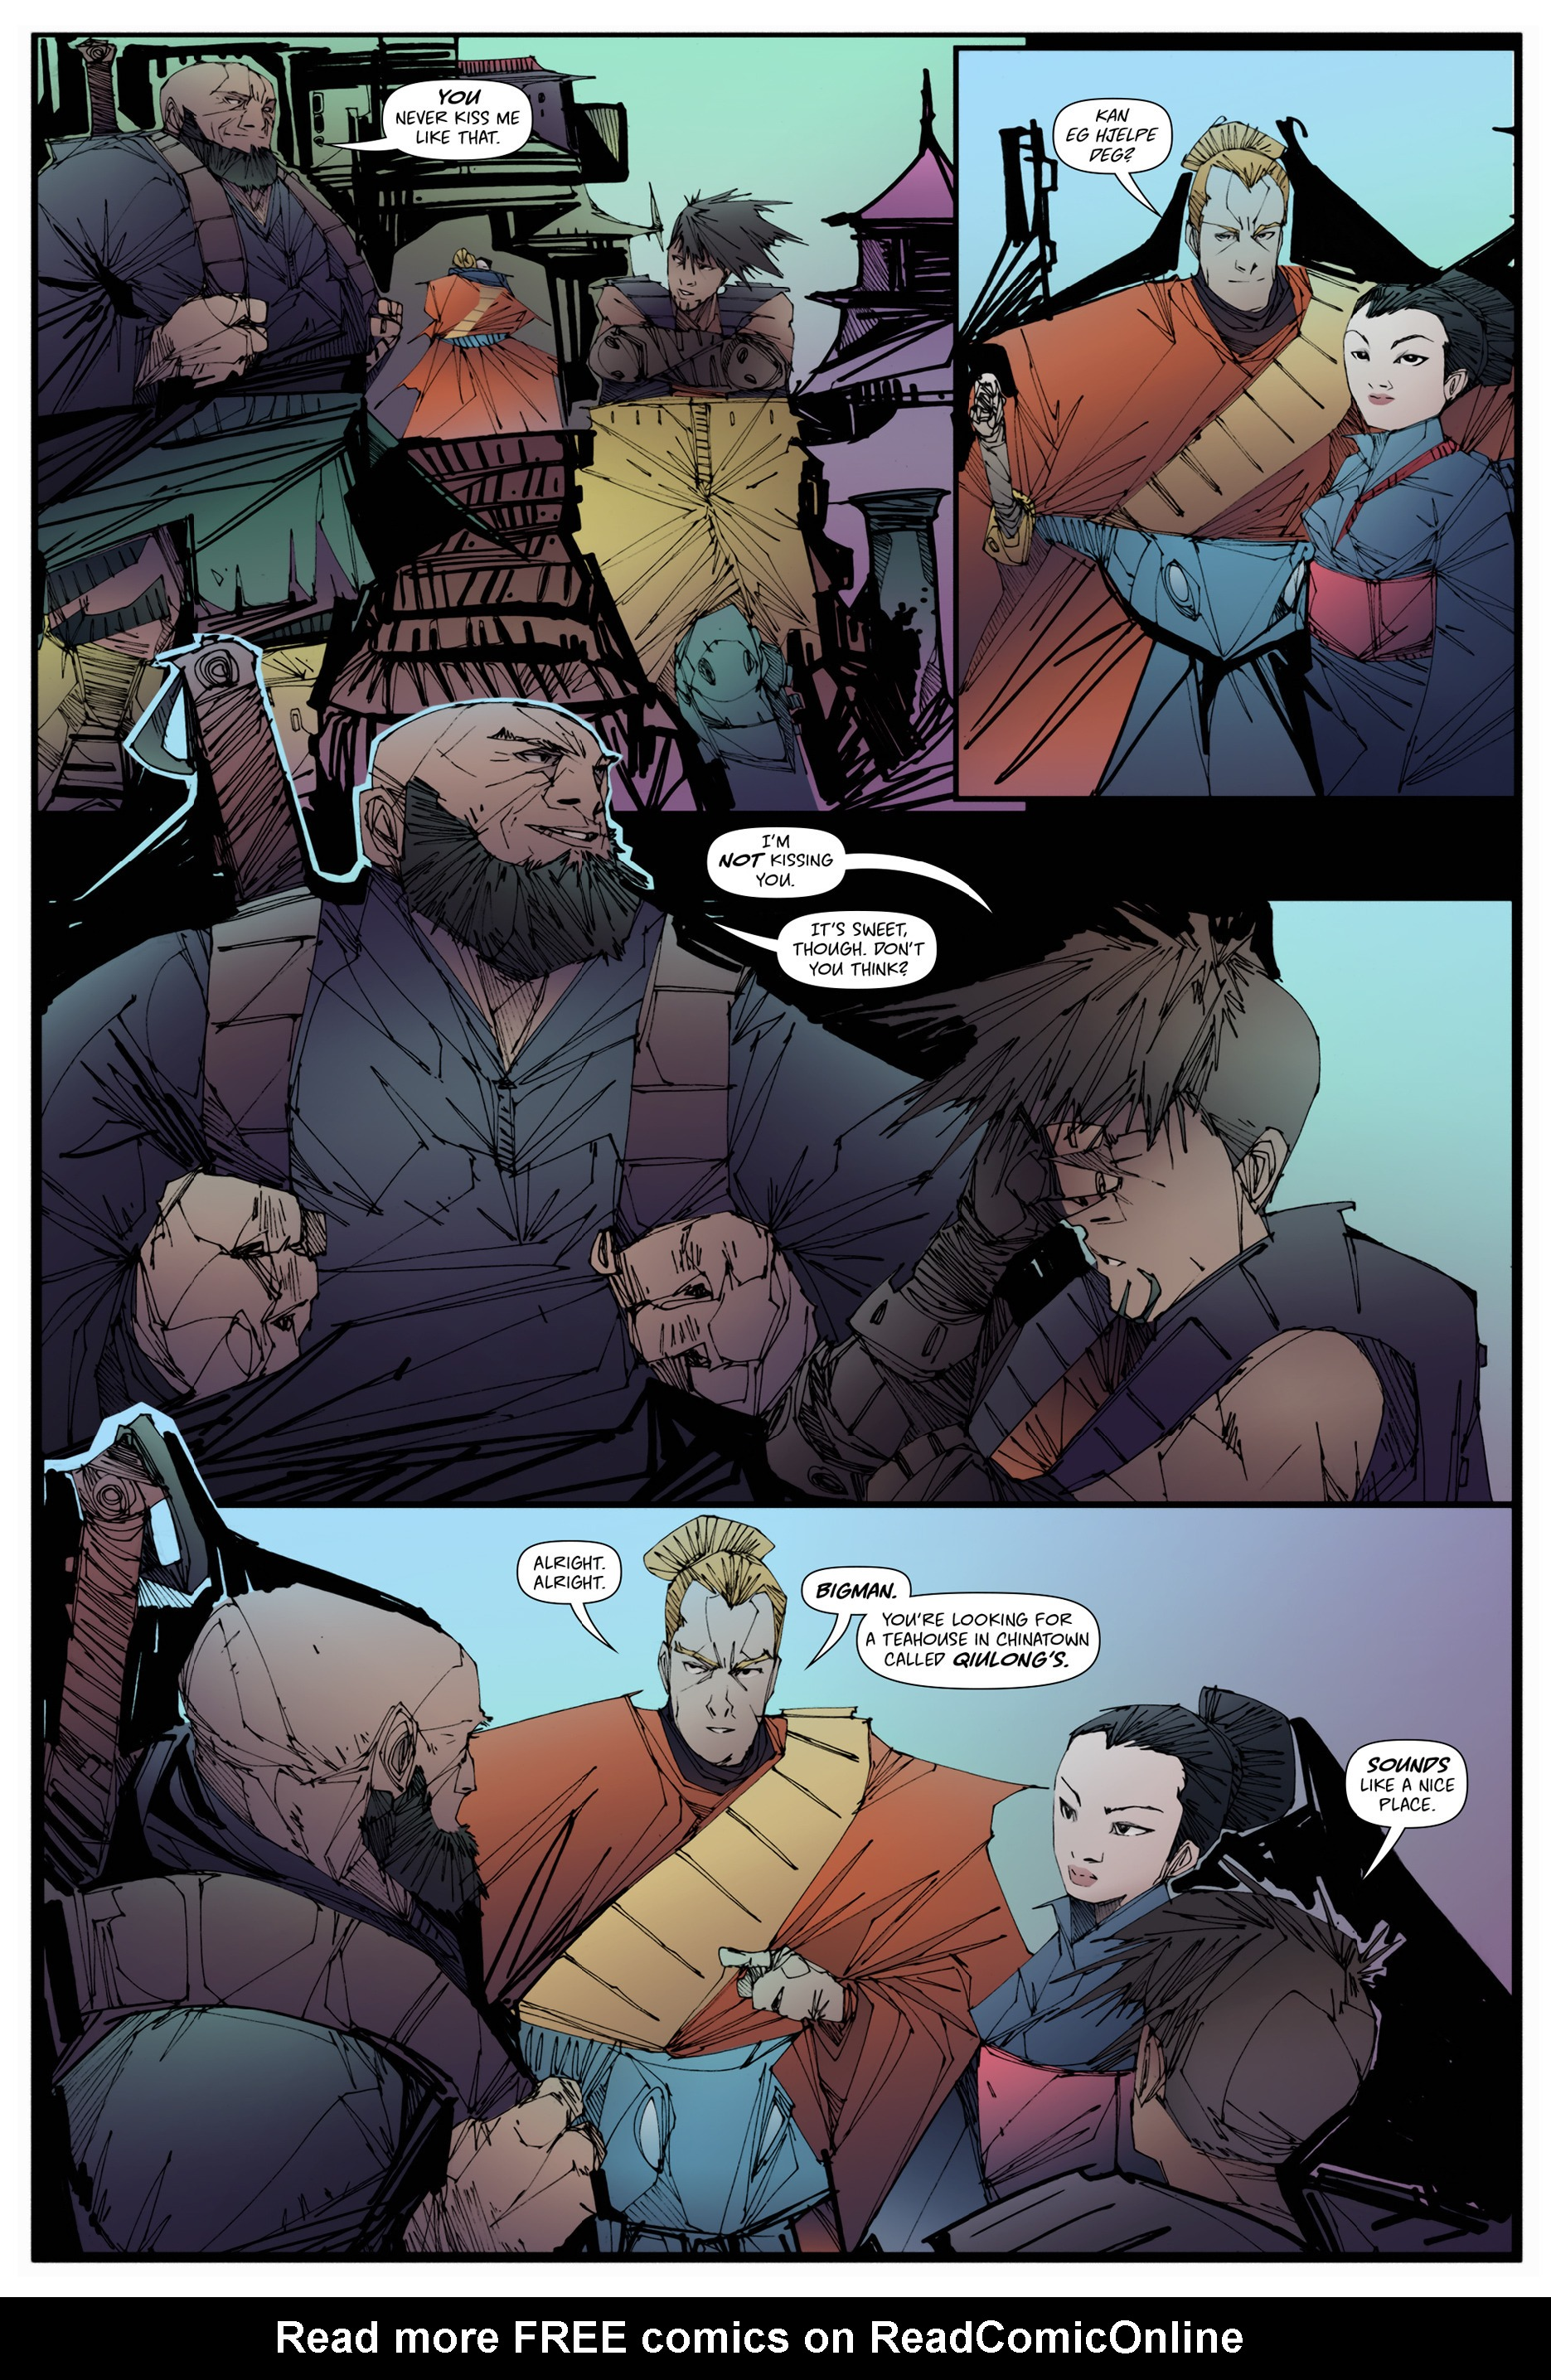 Read online Scrimshaw comic -  Issue #2 - 22